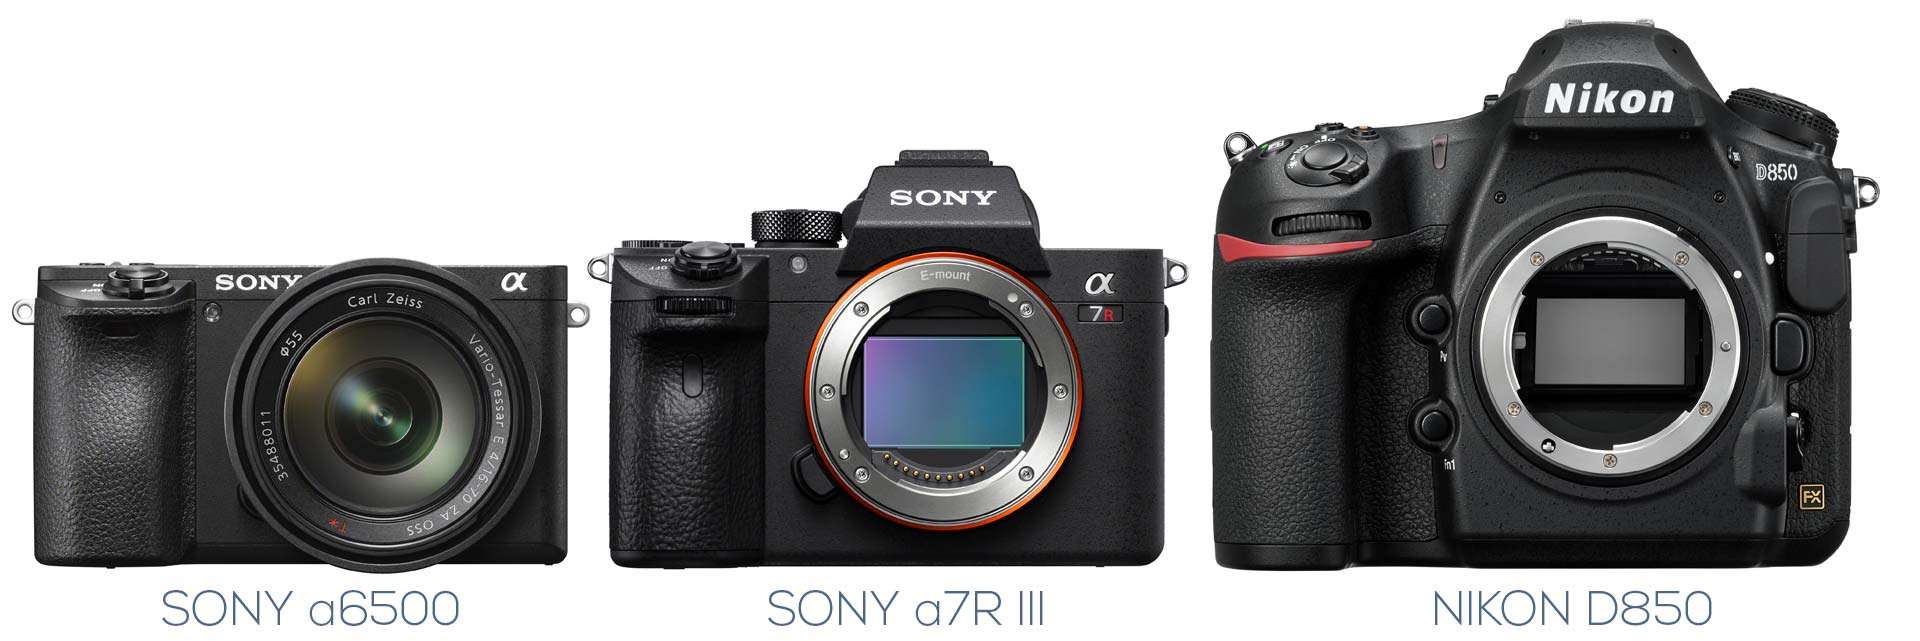 Sony A7R III vs Nikon D850: Which Should You Buy? – Light